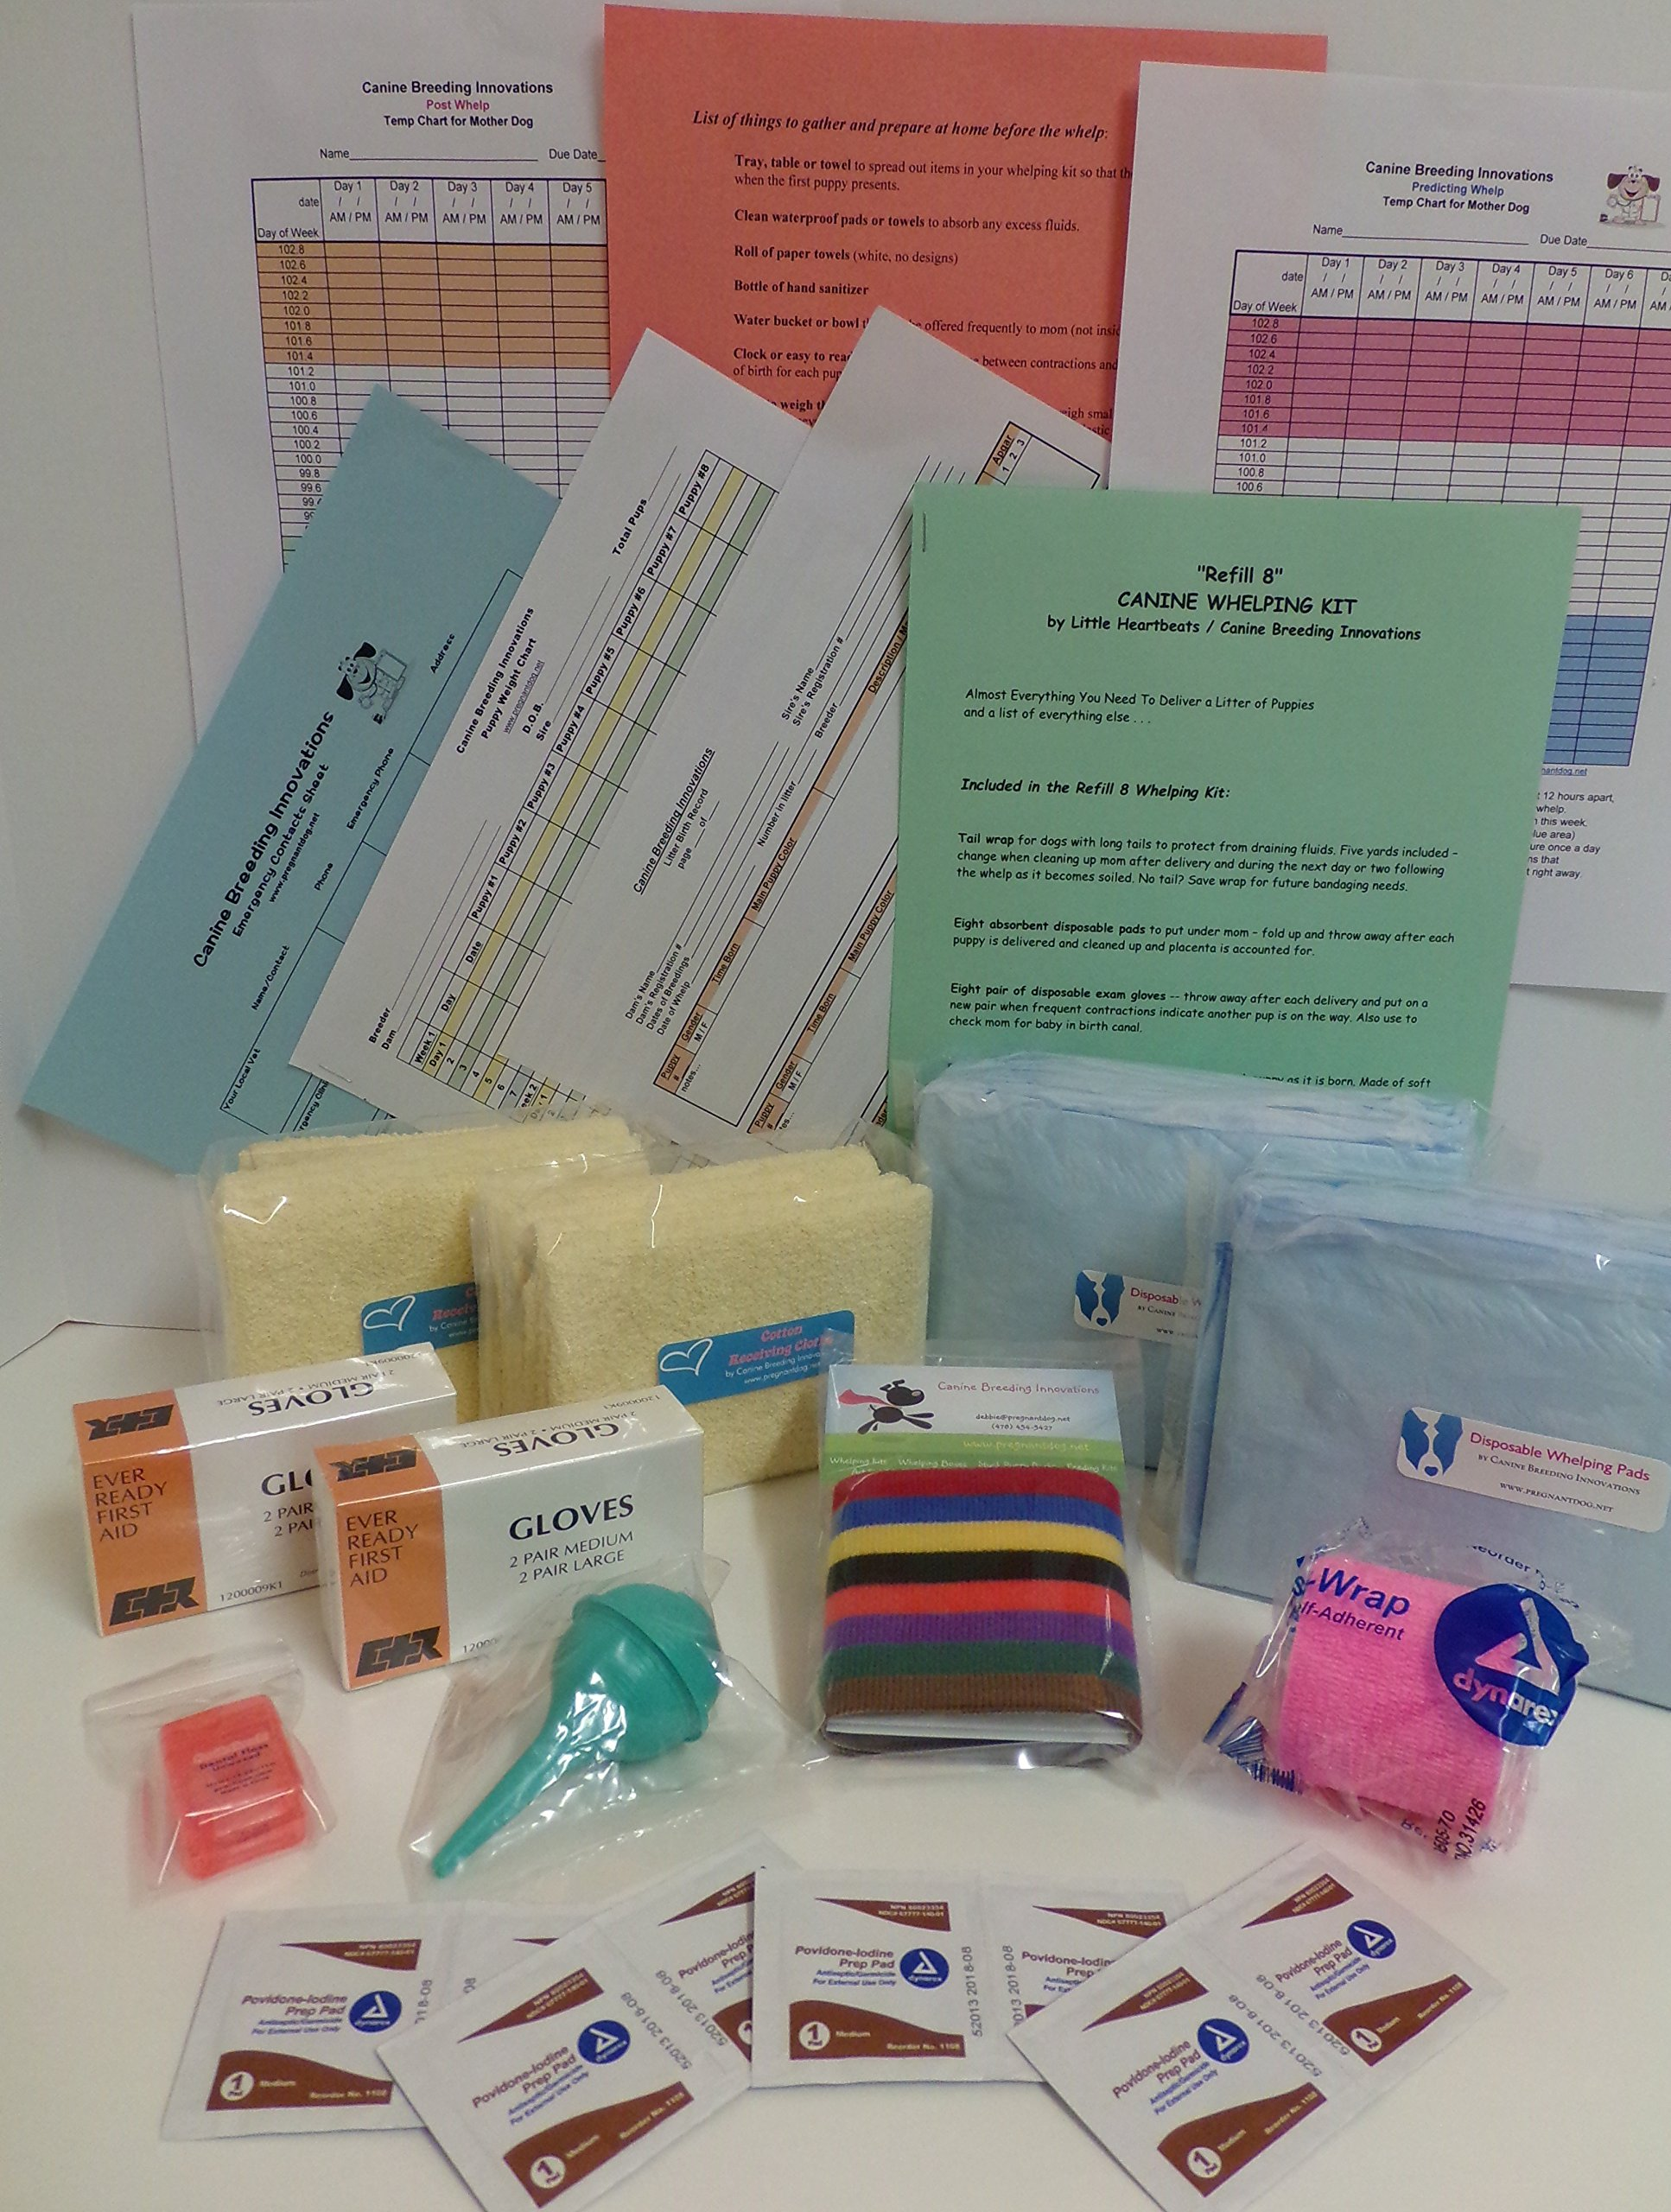 Little Heartbeats Whelping Whelping Kit Refill for up to 8 for Puppies Dogs by Little Heartbeats Whelping